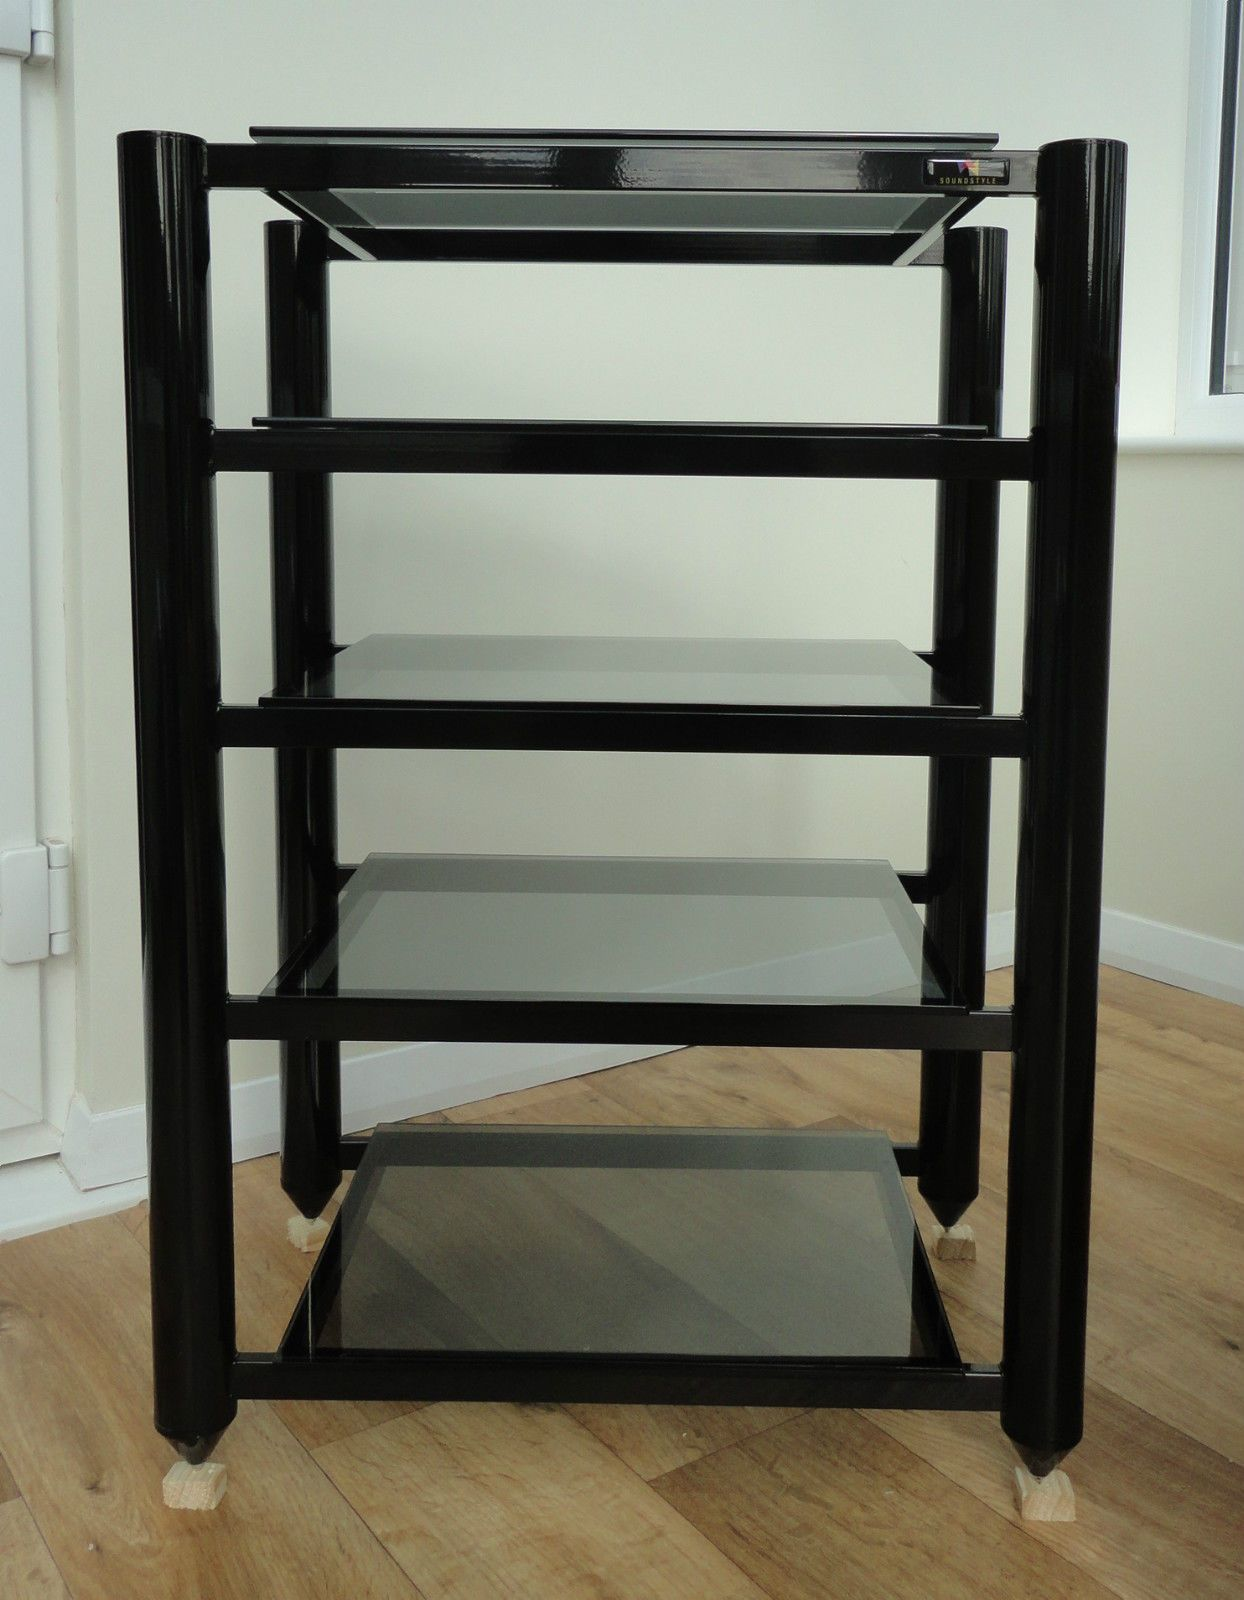 Soundstyle Hi Fi Audio Rack Black With Tinted Glass Shelves Audiophile